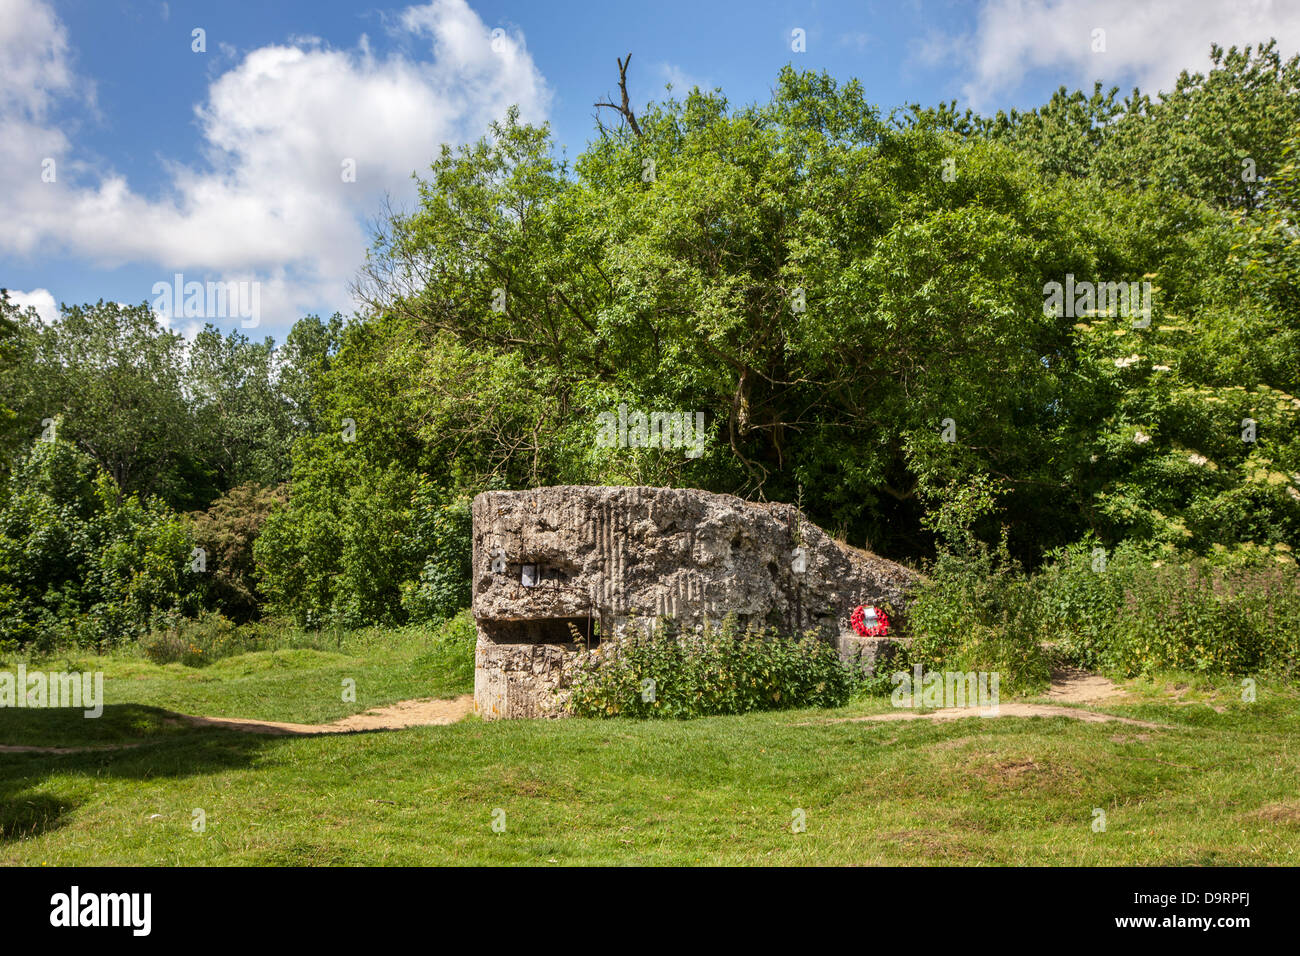 Ruin of First World War One German pillbox / bunker on Hill 60, WWI military site at Zillebeke, West Flanders, Belgium - Stock Image